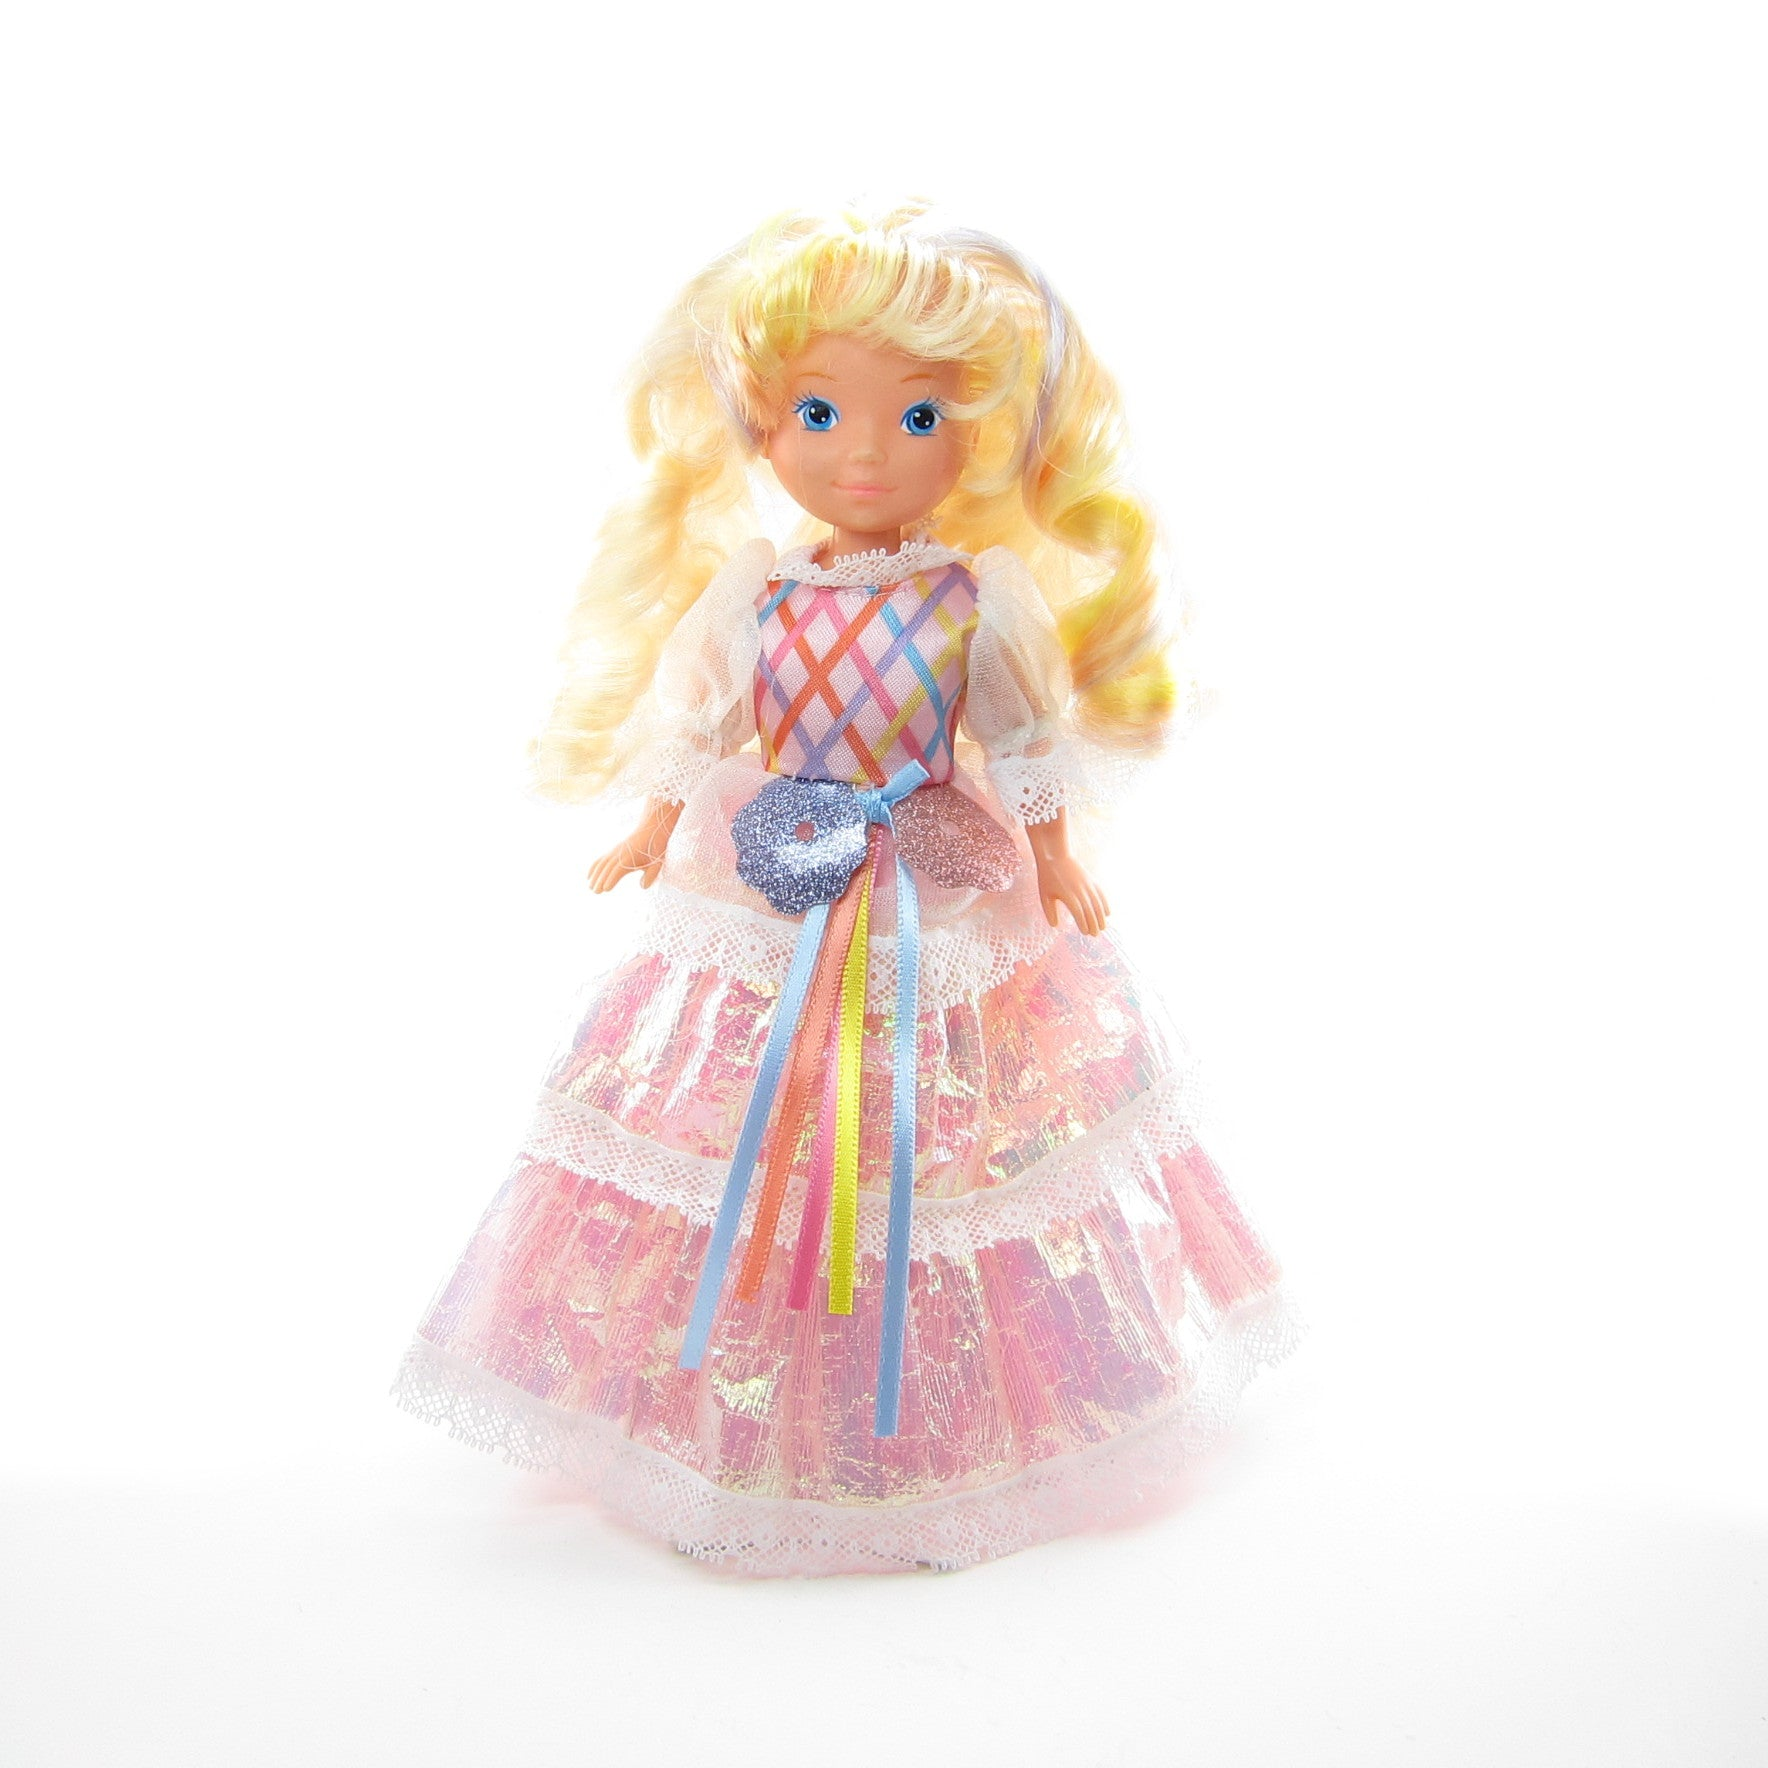 Lady LovelyLocks doll with original pink dress